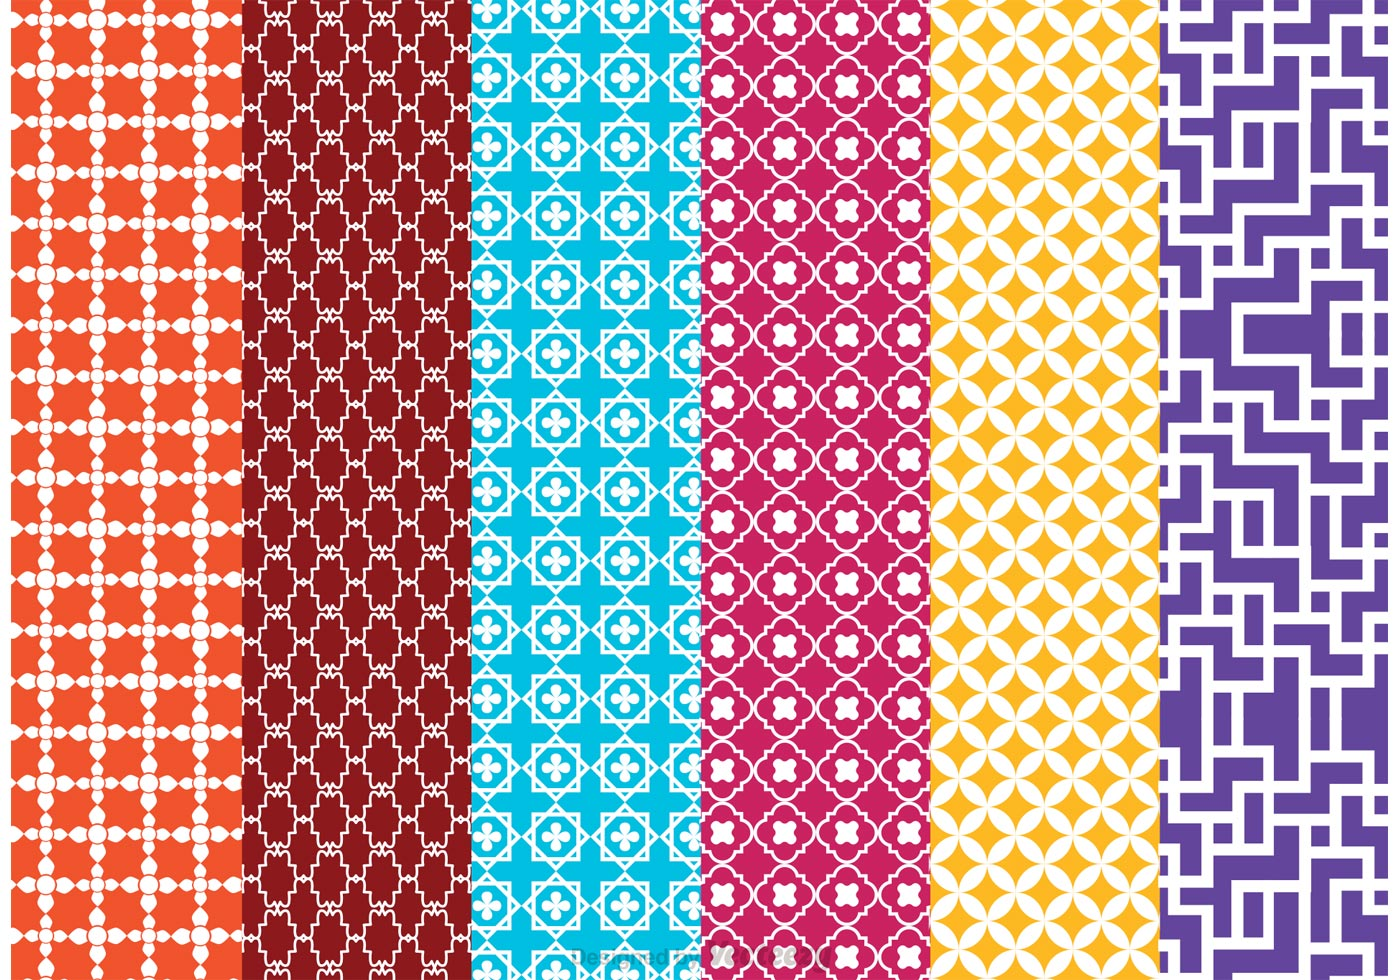 Morocco Vector Pattern Pack - Download Free Vector Art, Stock Graphics ...